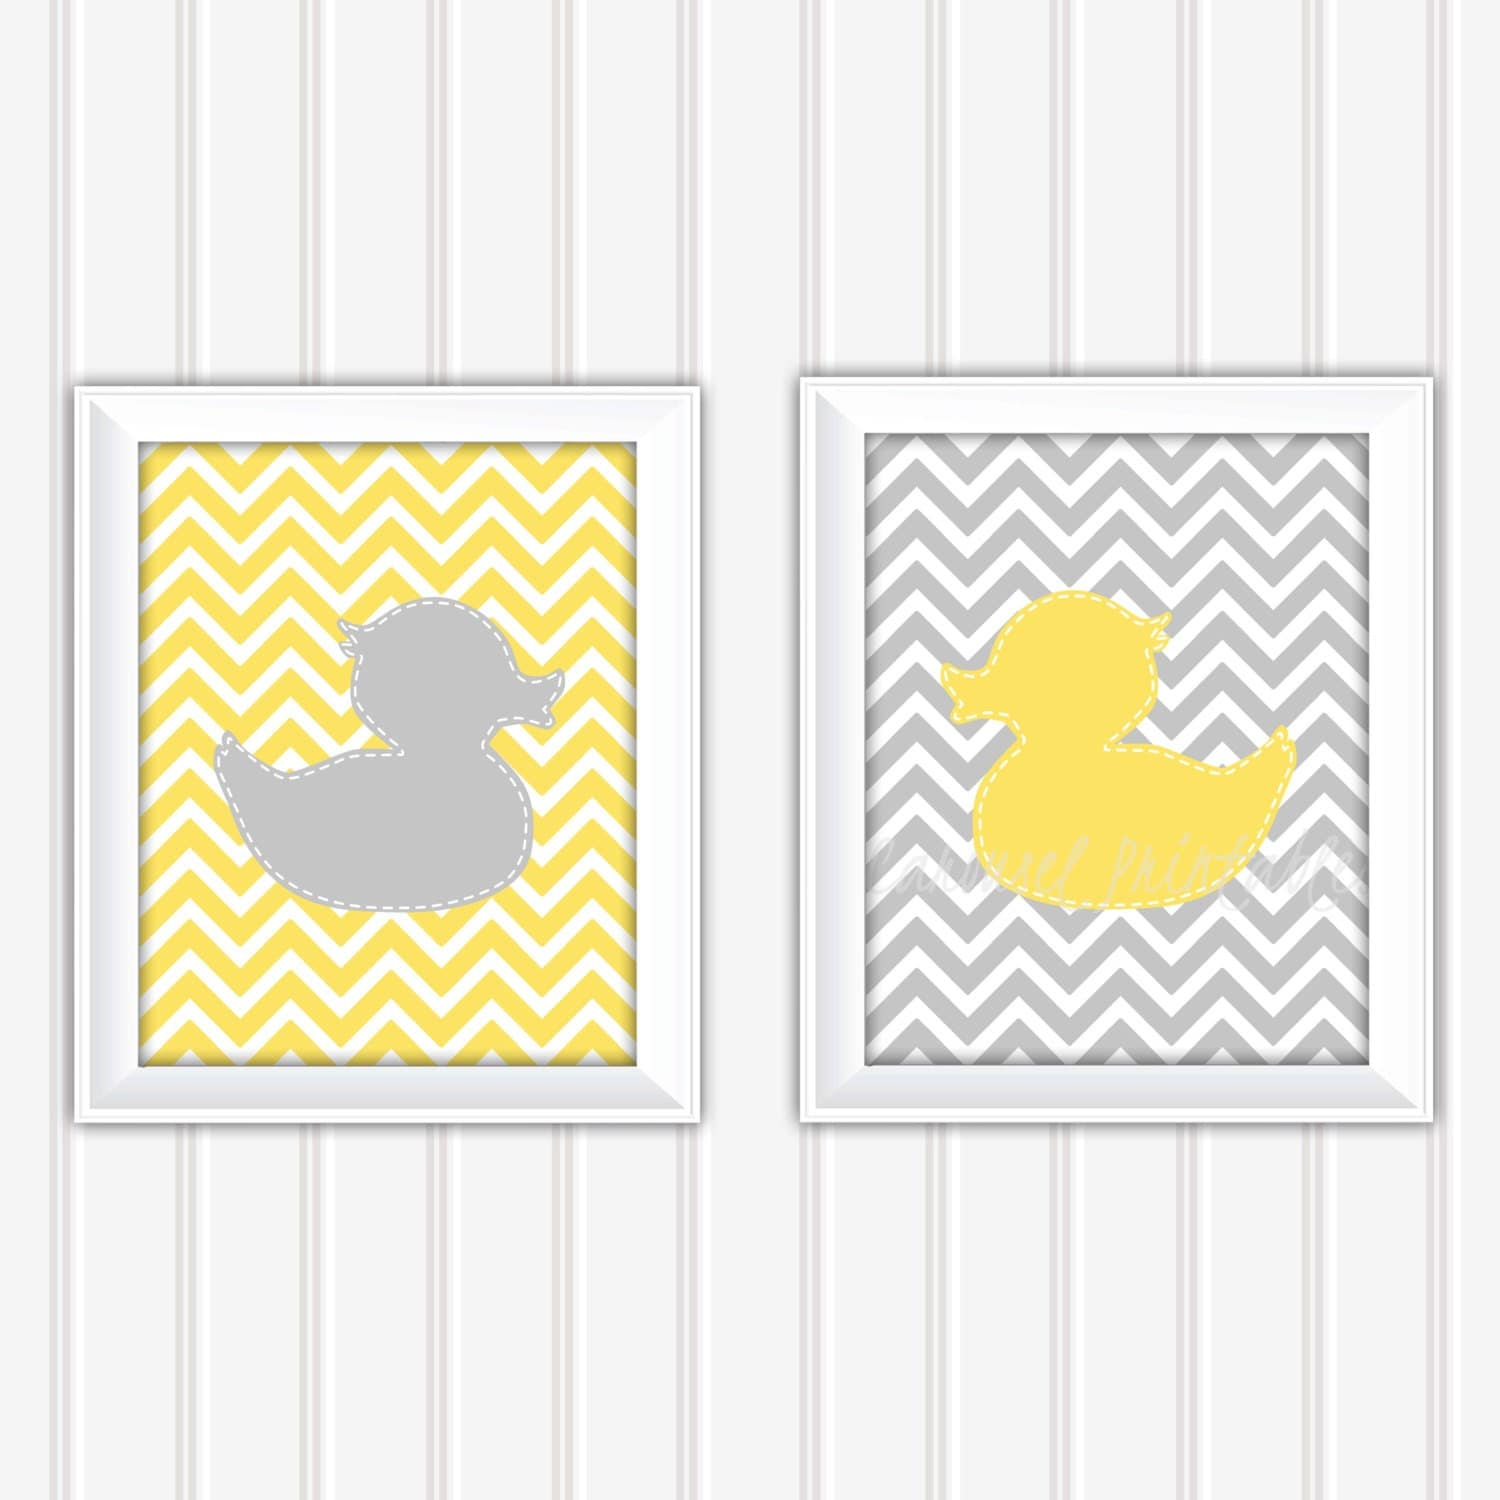 Bathroom wall art printables - Rubber Duck Wall Art Bathroom Wall Art Printable Wall Art Instant Download Childrens Wall Art Kids Wall Art Nursery Wall Art Diy Wall Art